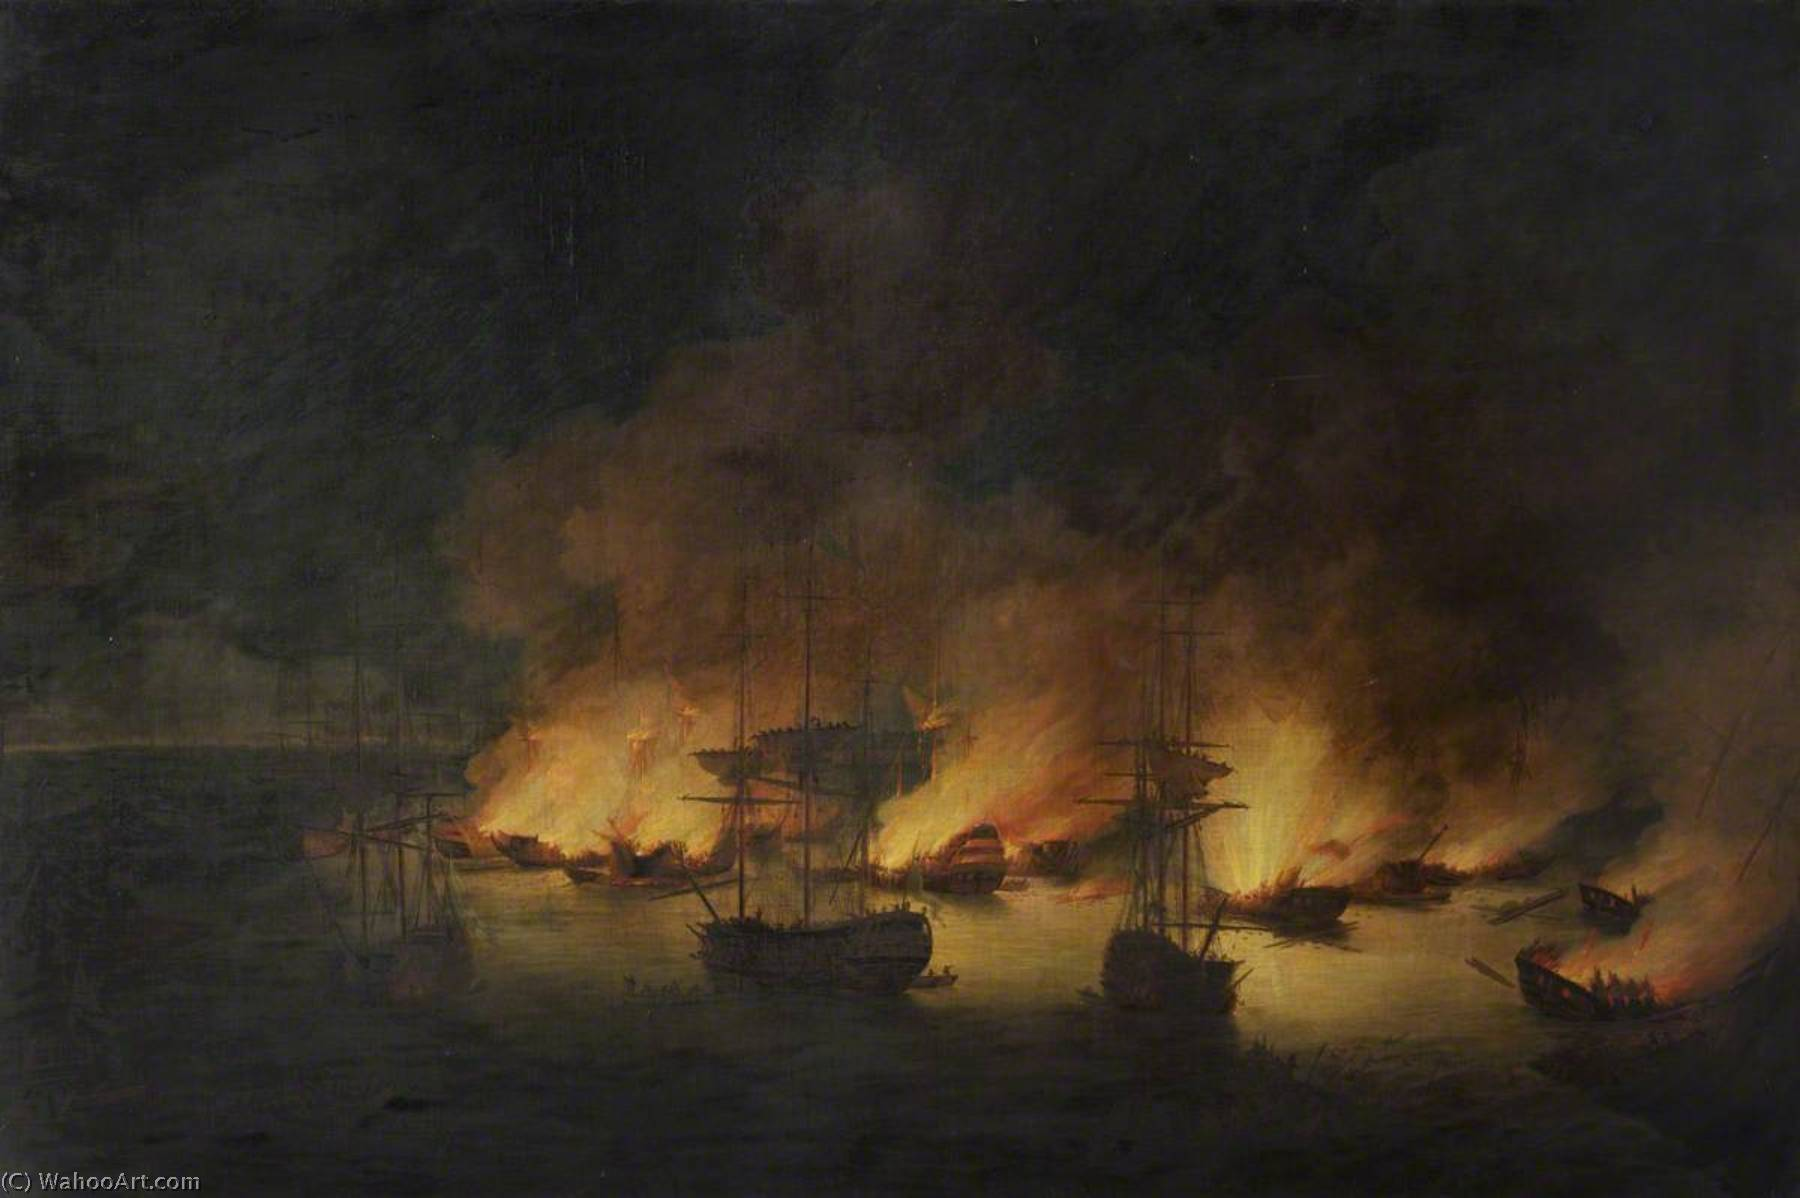 Order Paintings Reproductions | The Burning of the Turkish Fleet in Chesme Bay, 7 July 1770 by Richard Paton (1717-1791) | WahooArt.com